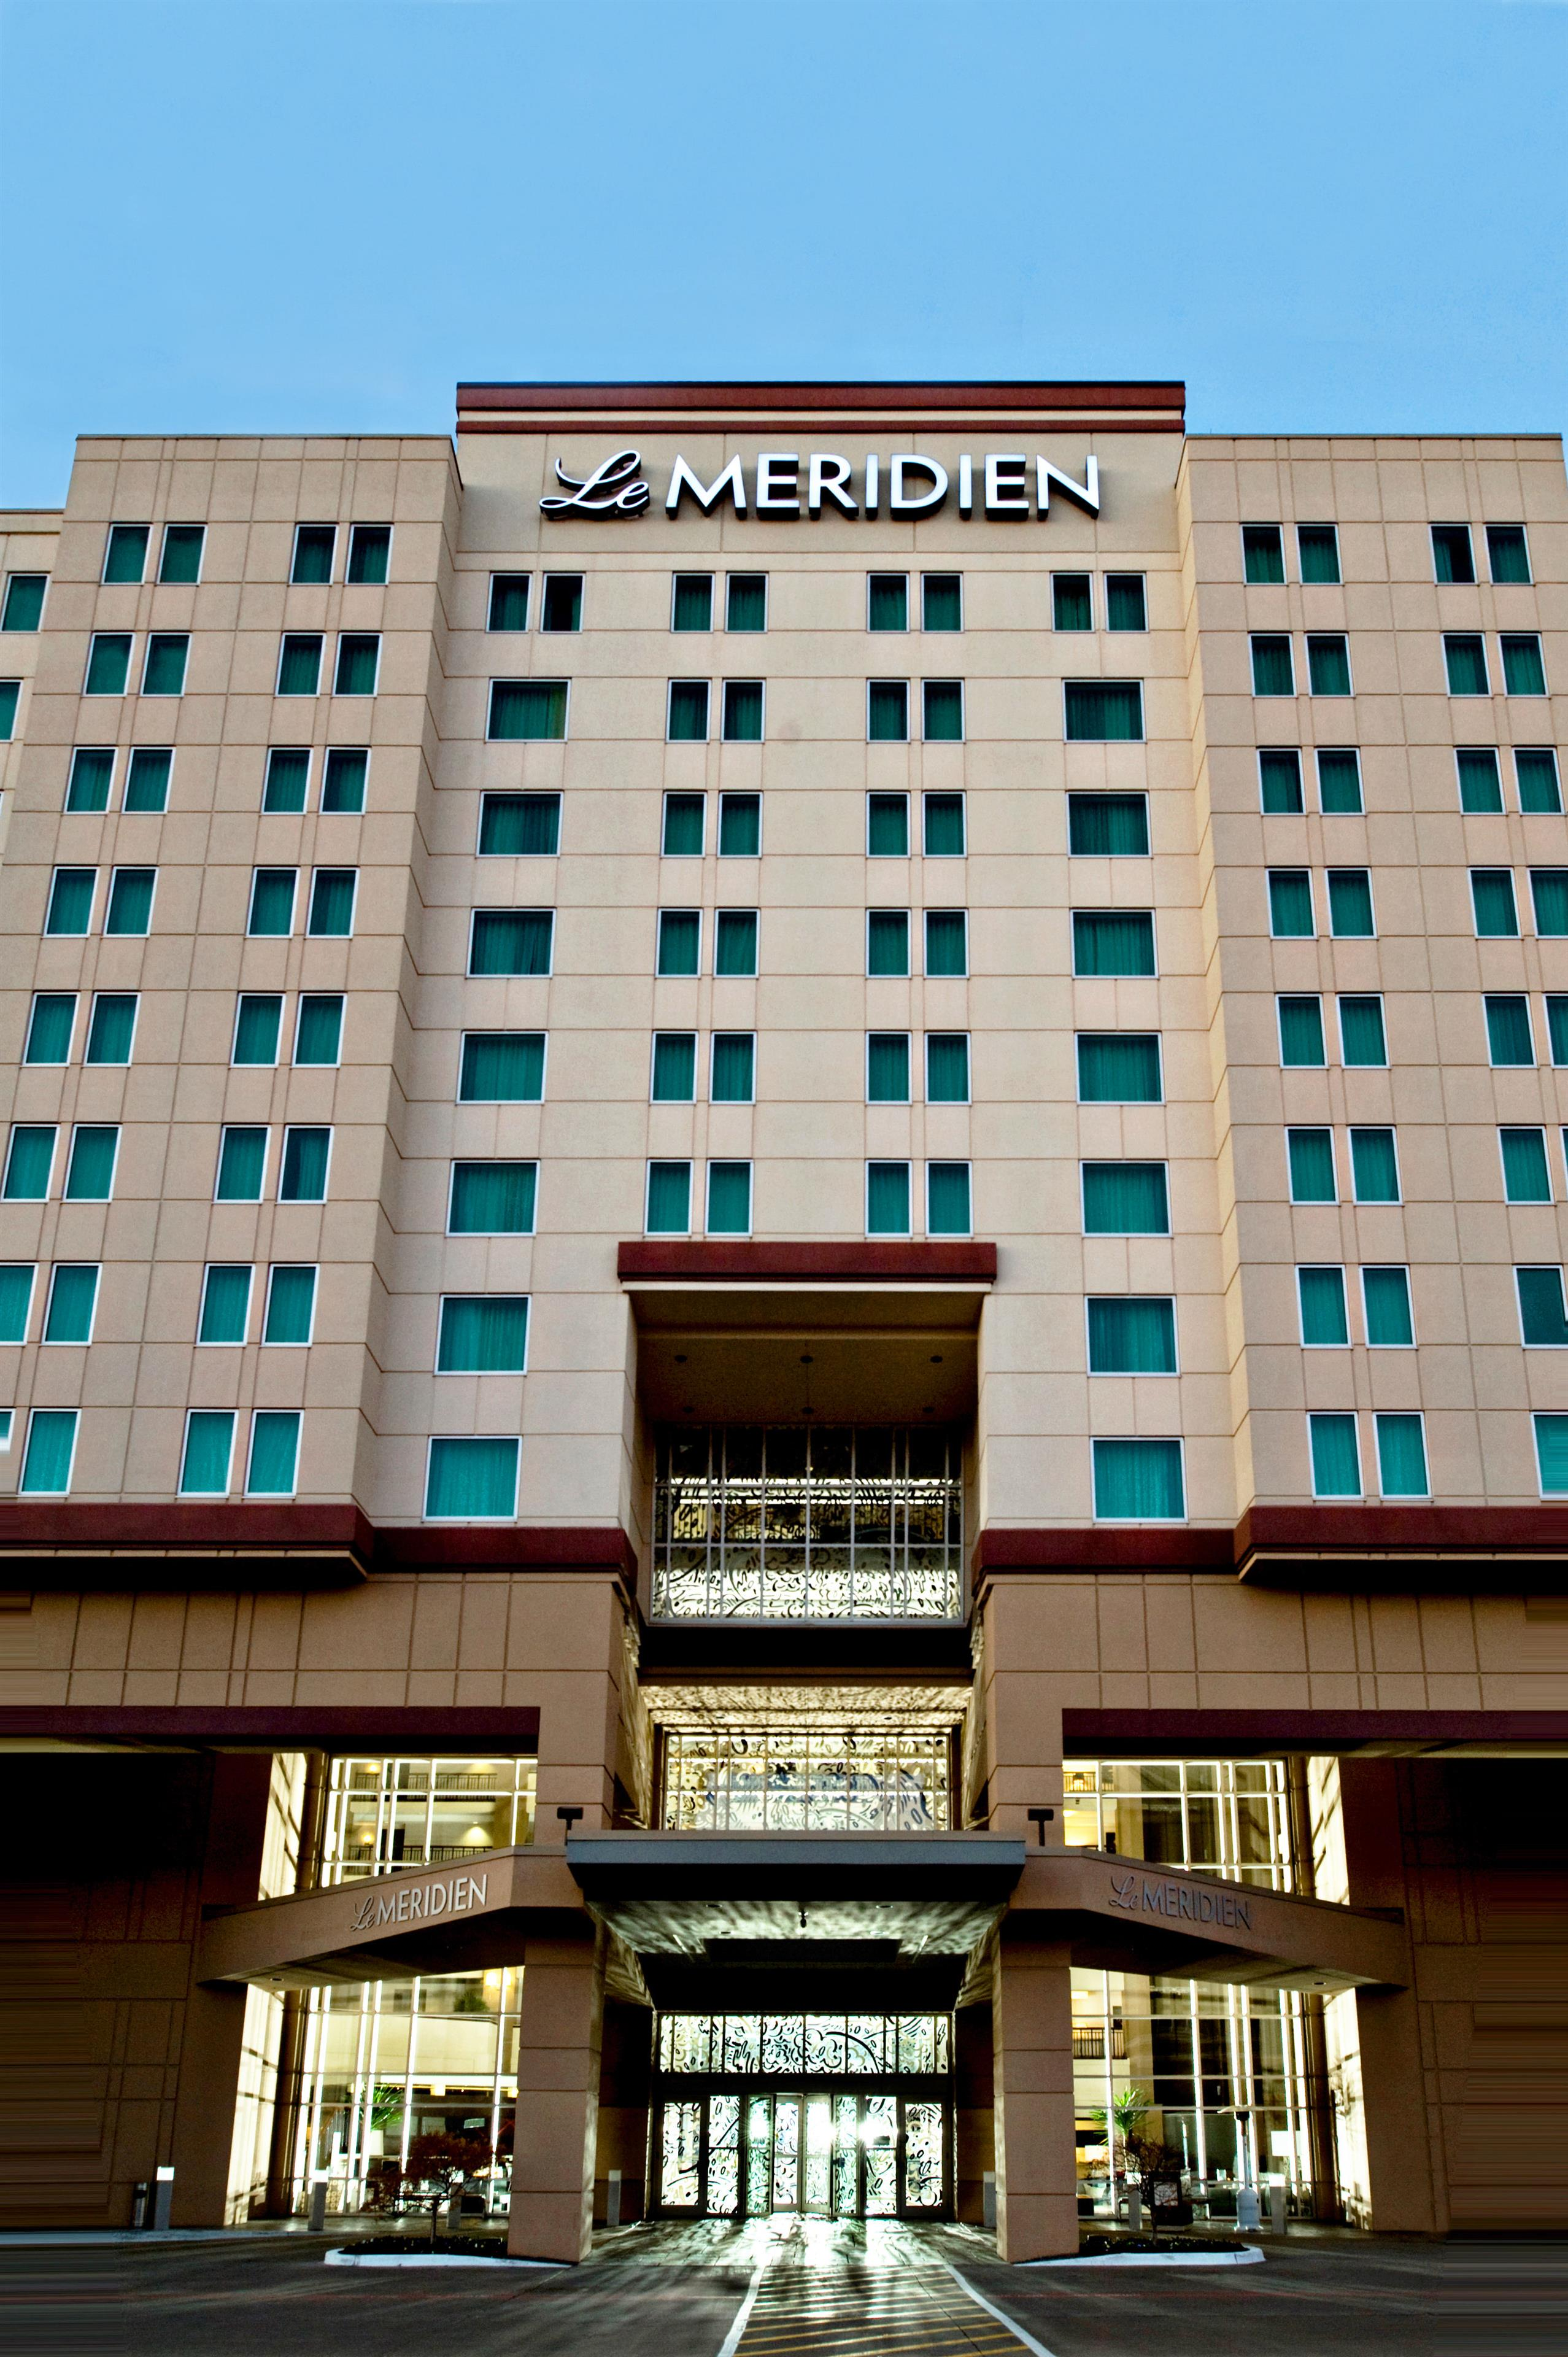 With a contemporary mix of luxury and style, Le Meridien brings that European heritage right to the forefront of your mind. This culturally refined company doesn't just aim to meet your expectations; it is Le Meridien's goal to exceed your expectations and bring a little bit of beauty to your everyday life.